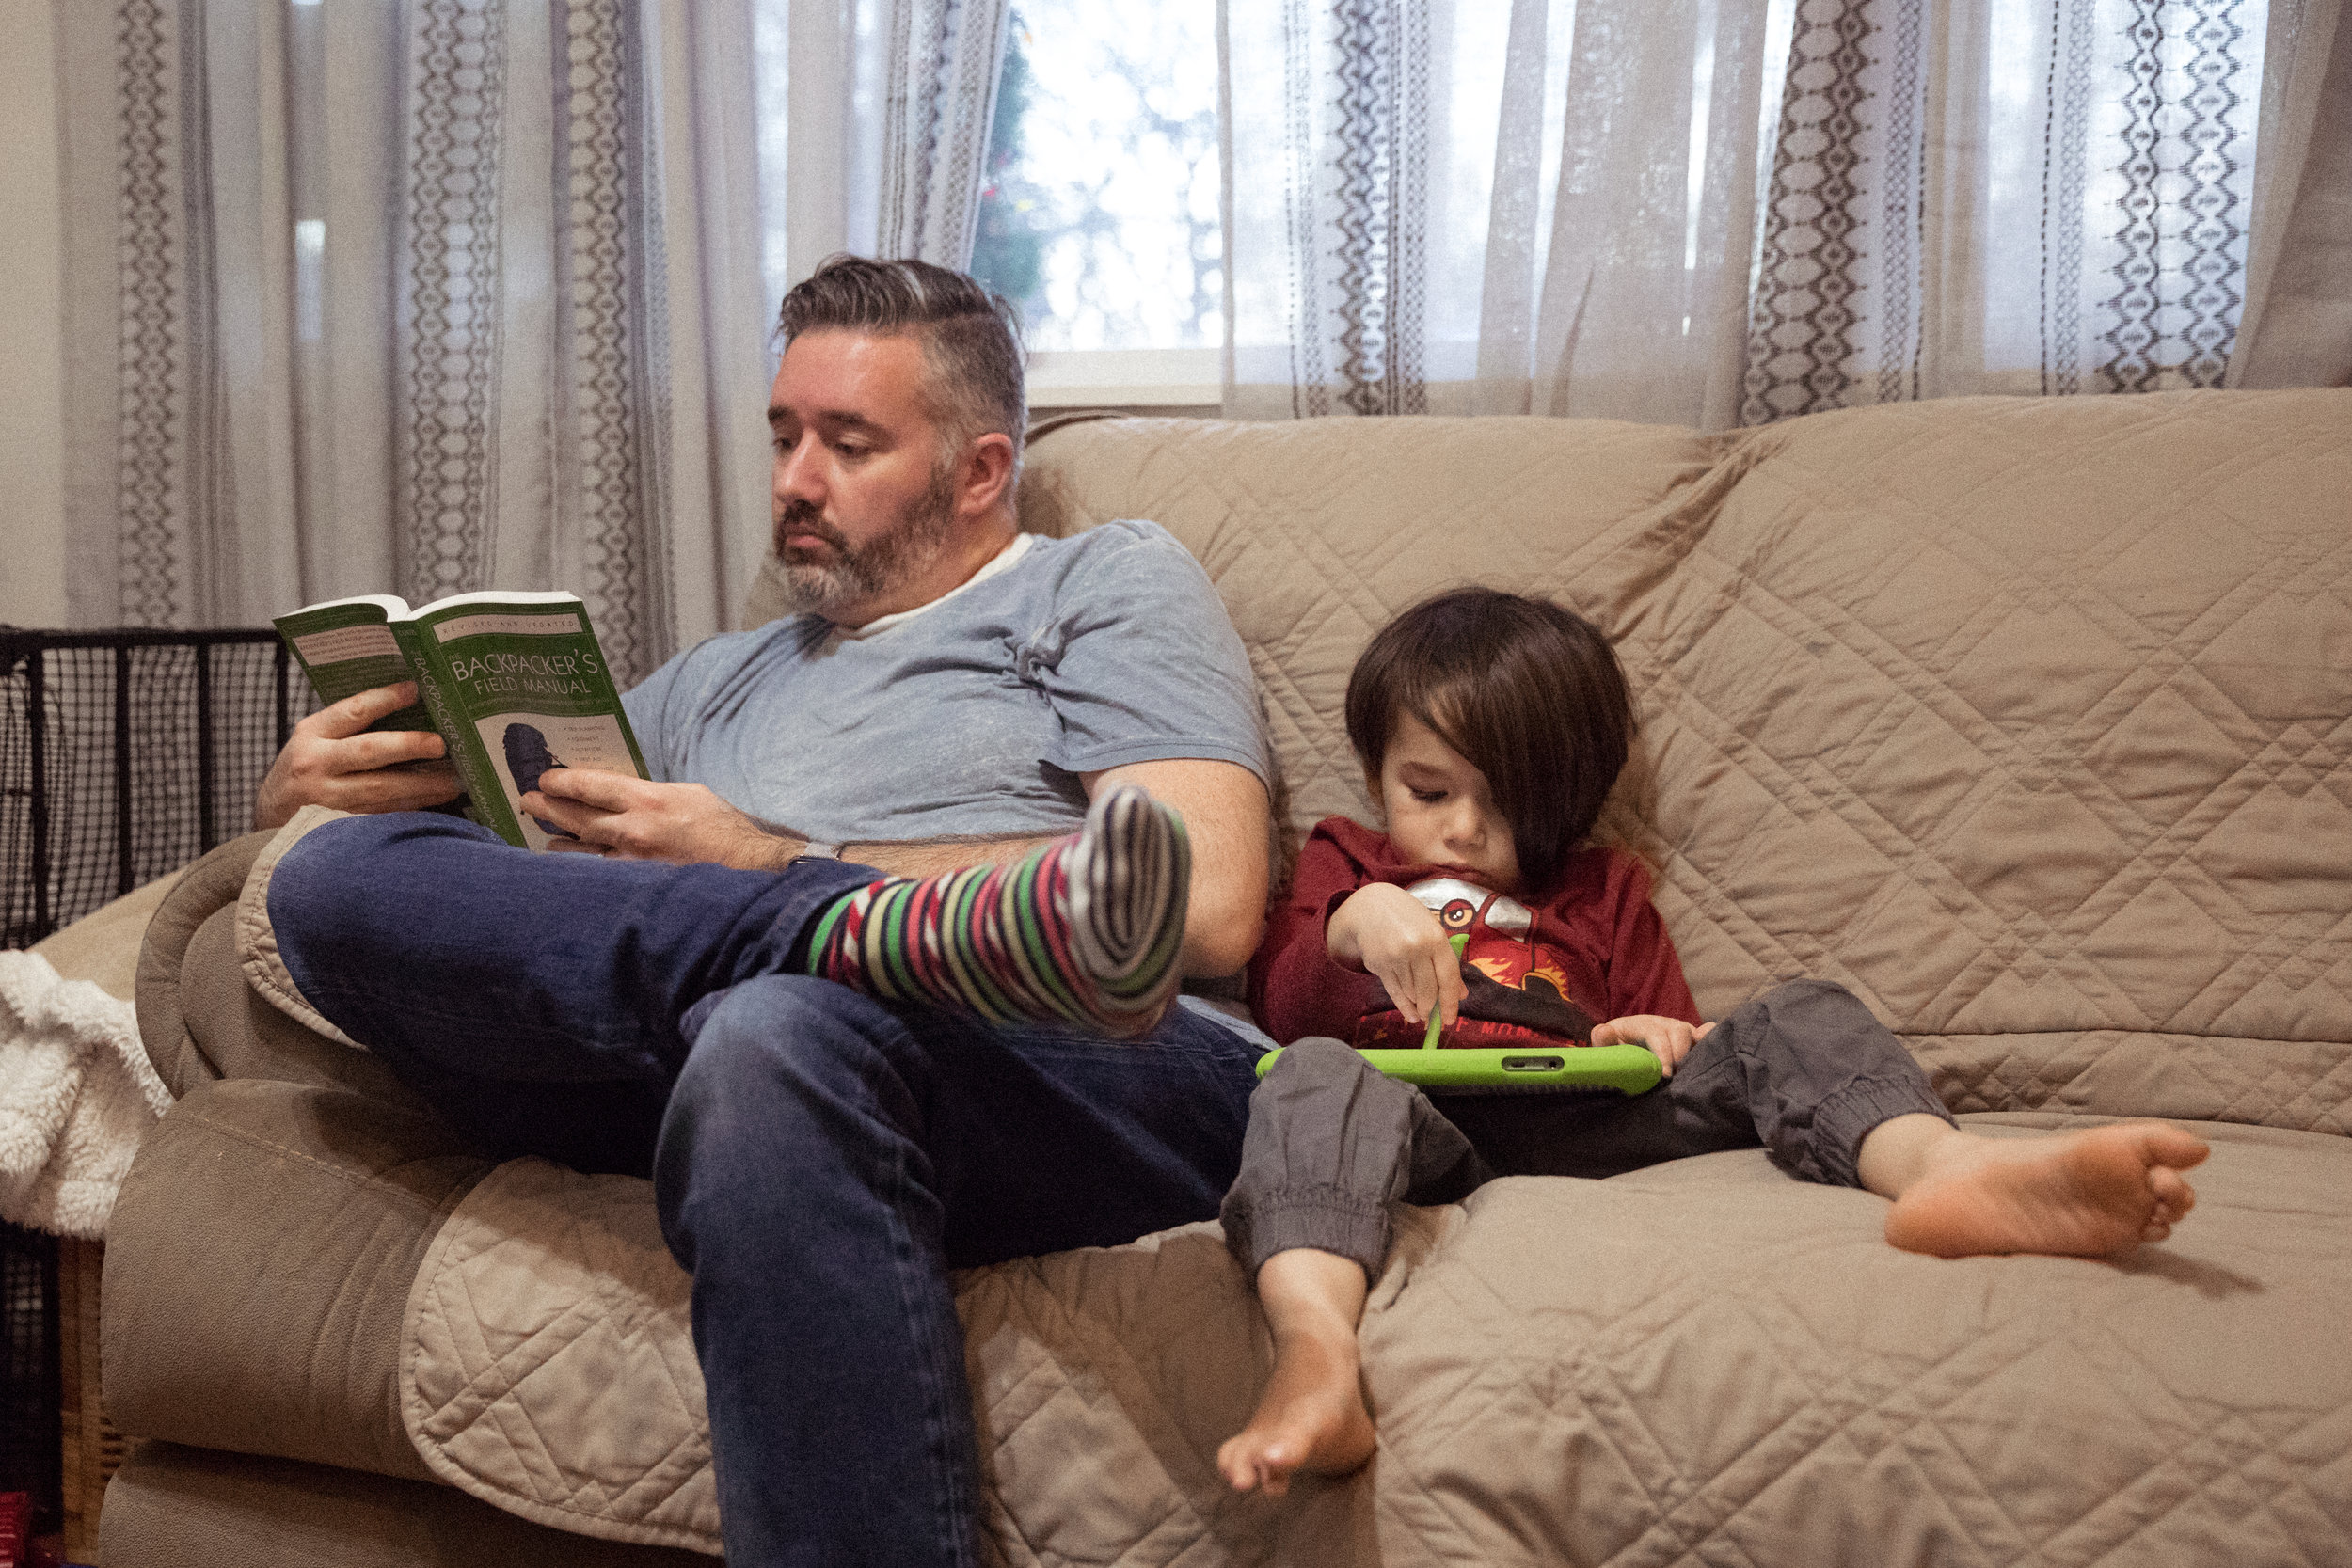 Love this image of my husband reading his hiking book while our 4 year old is playing on his leap pad but looks bored. I feel you buddy, mommy wants to get out too.